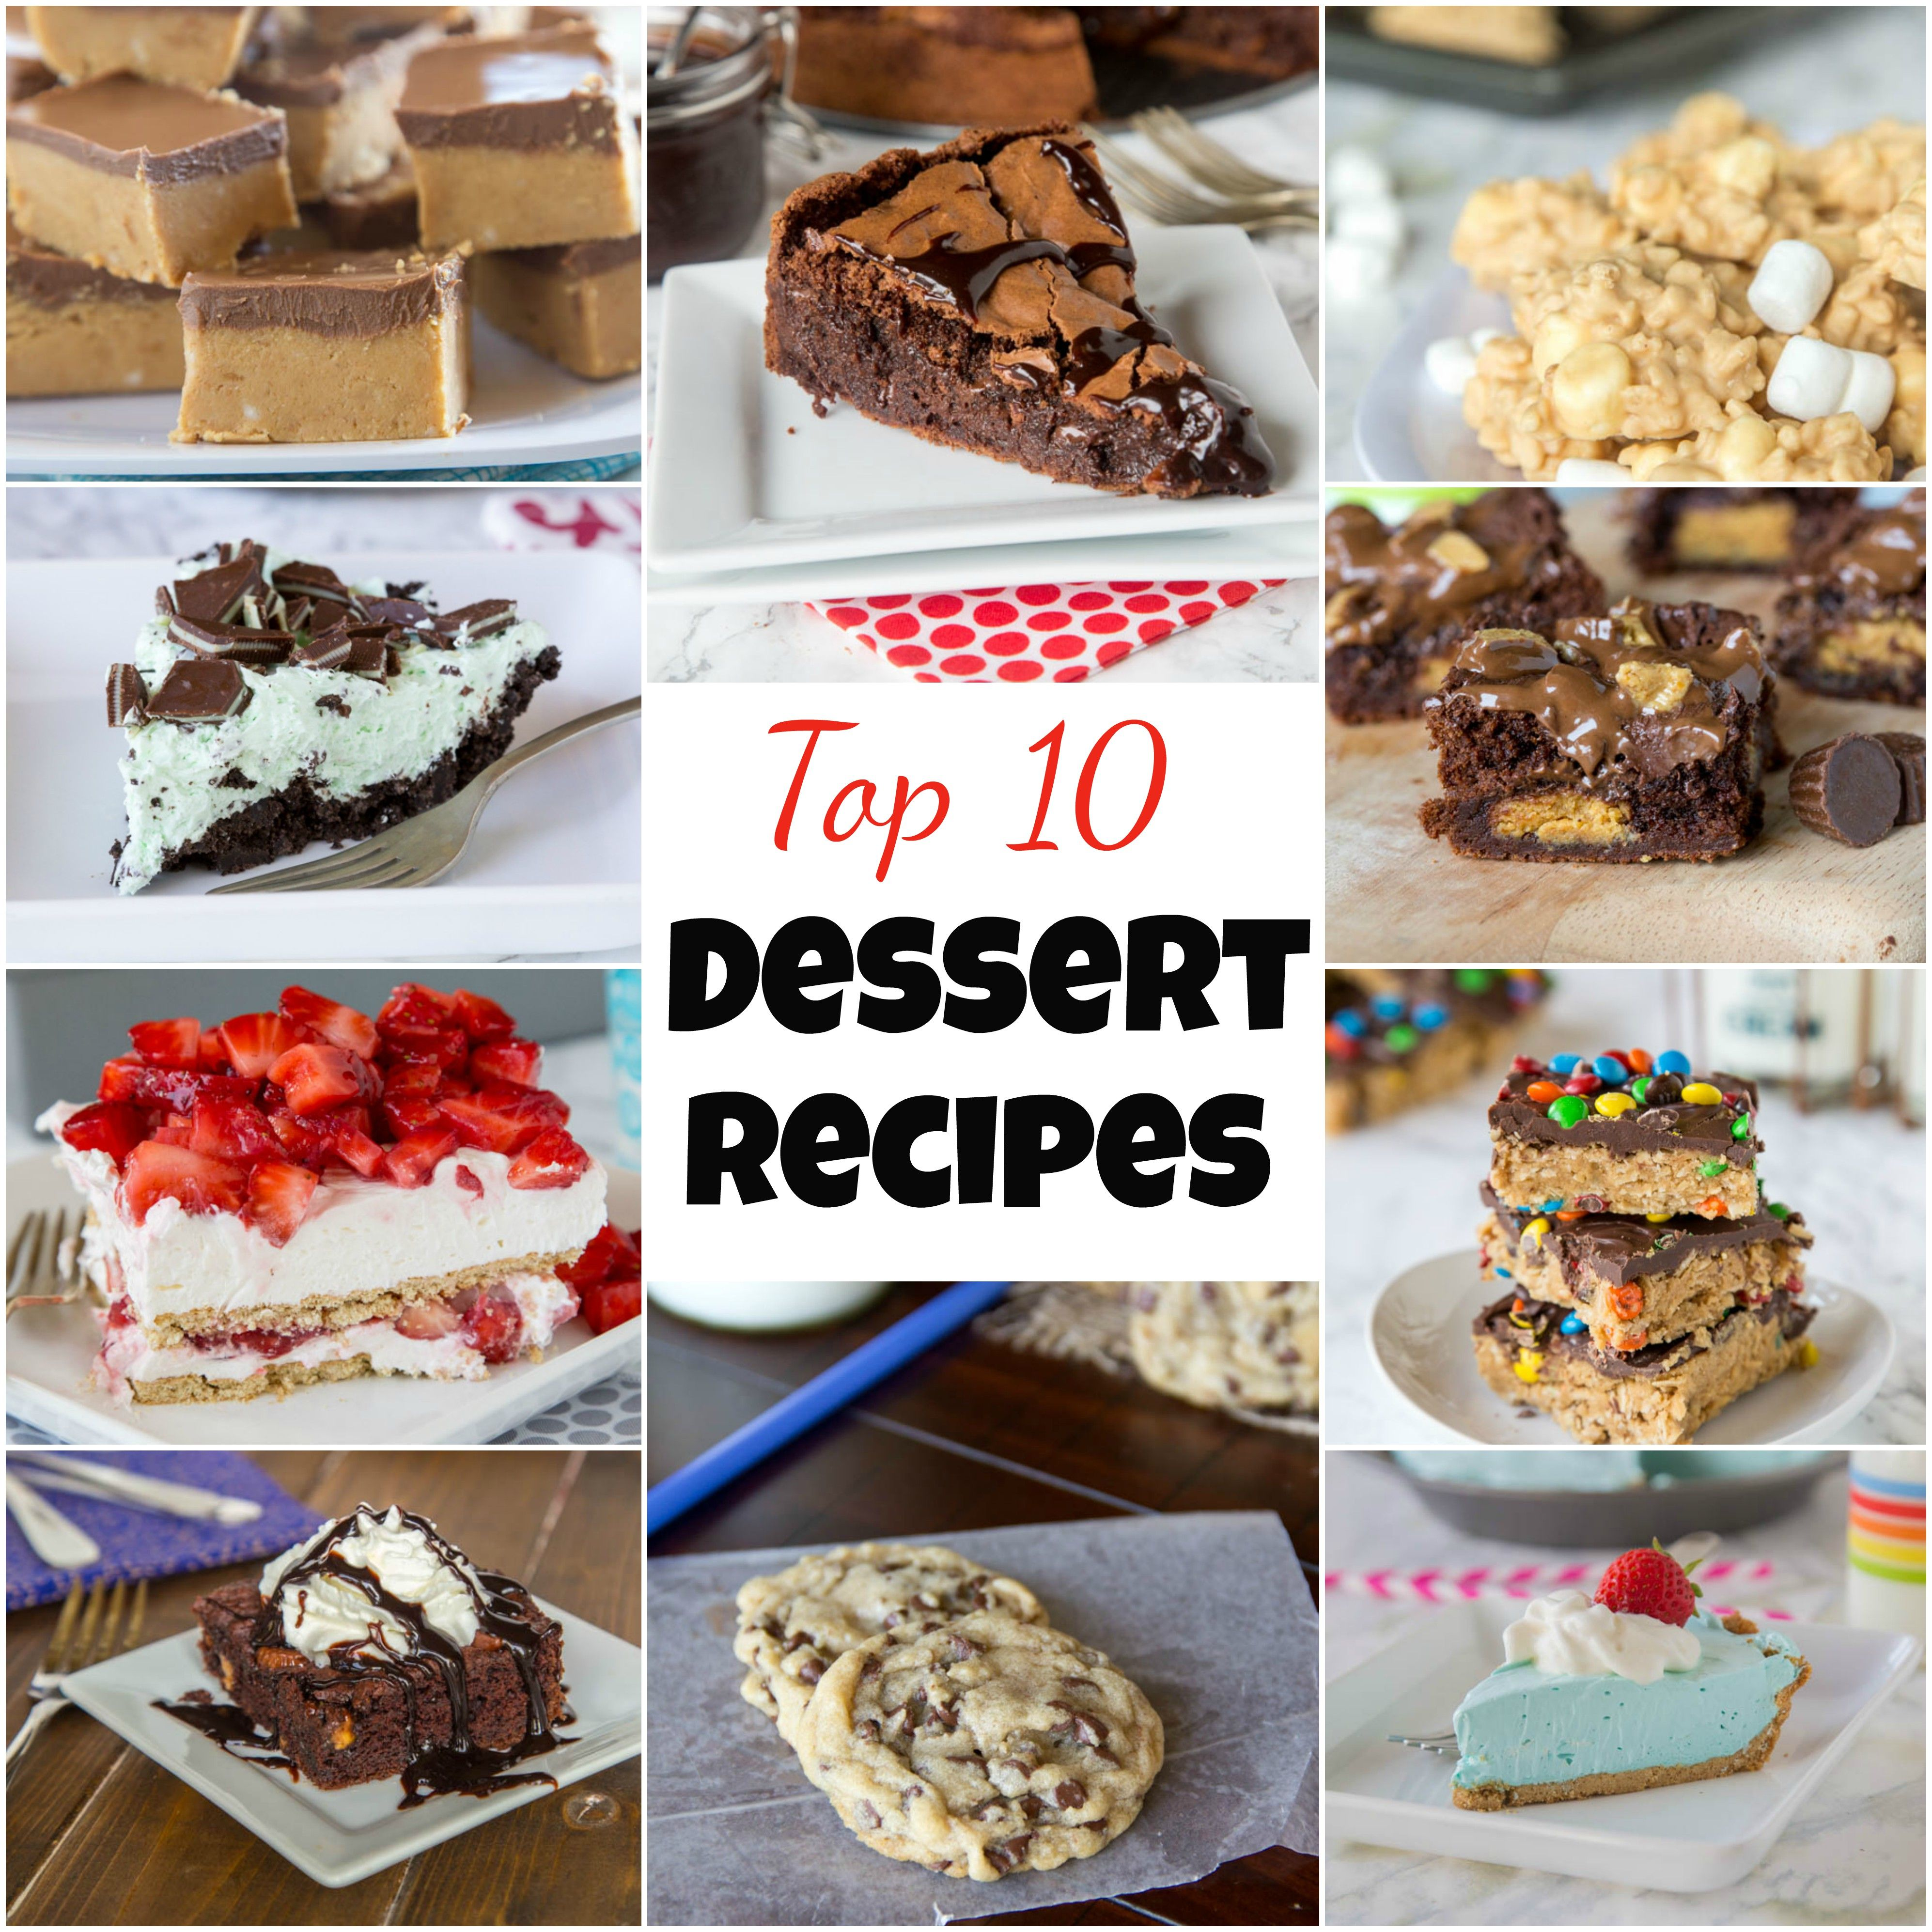 Top 10 Dessert Recipes You Can Find Here On Dinners Dishes And Desserts Cookies Cakes Pie Brownie Top 10 Desserts Easy Baking Recipes New Dessert Recipe